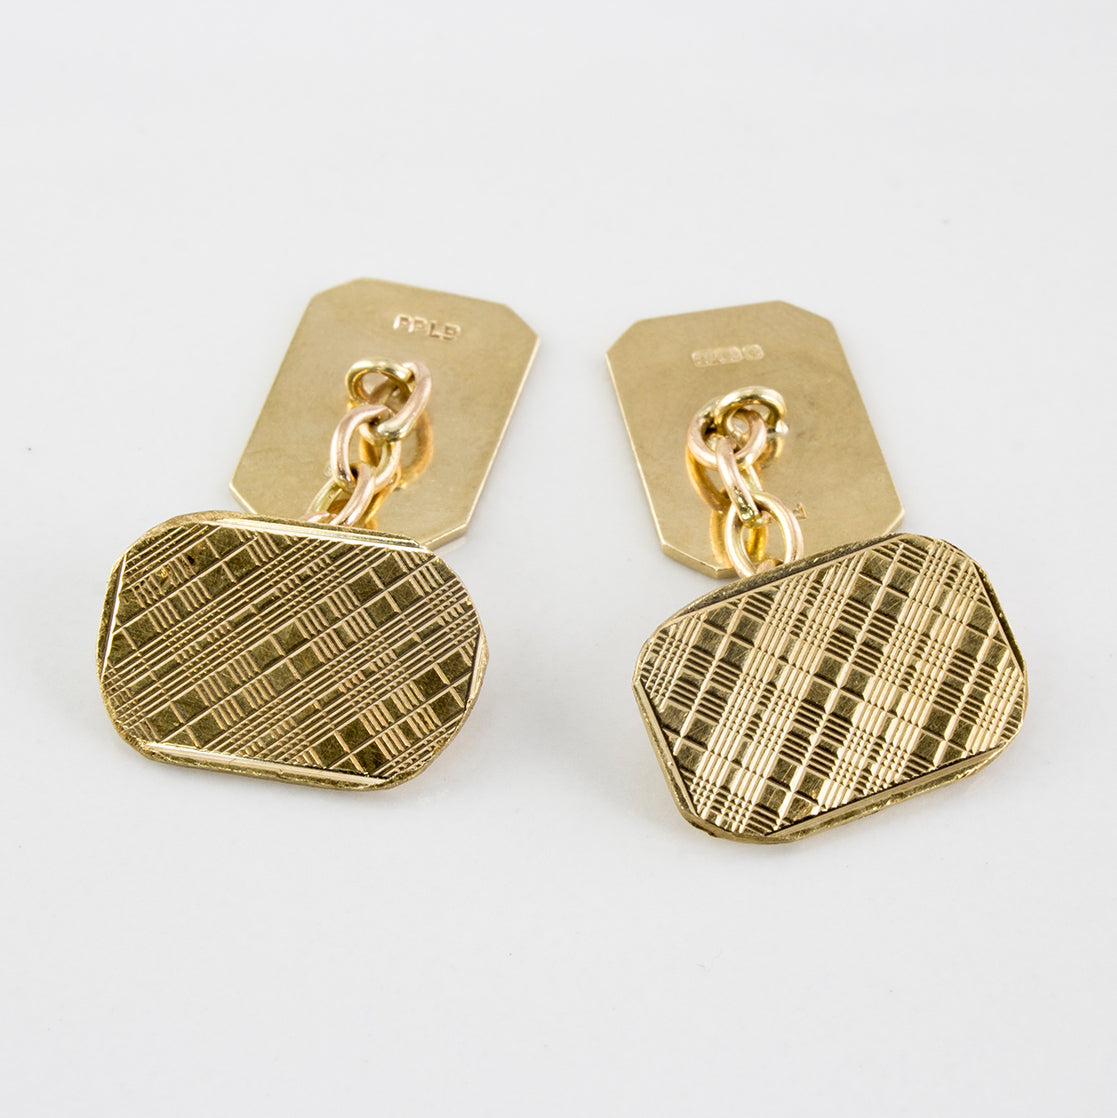 1960's Checkered Gold Cuff Links